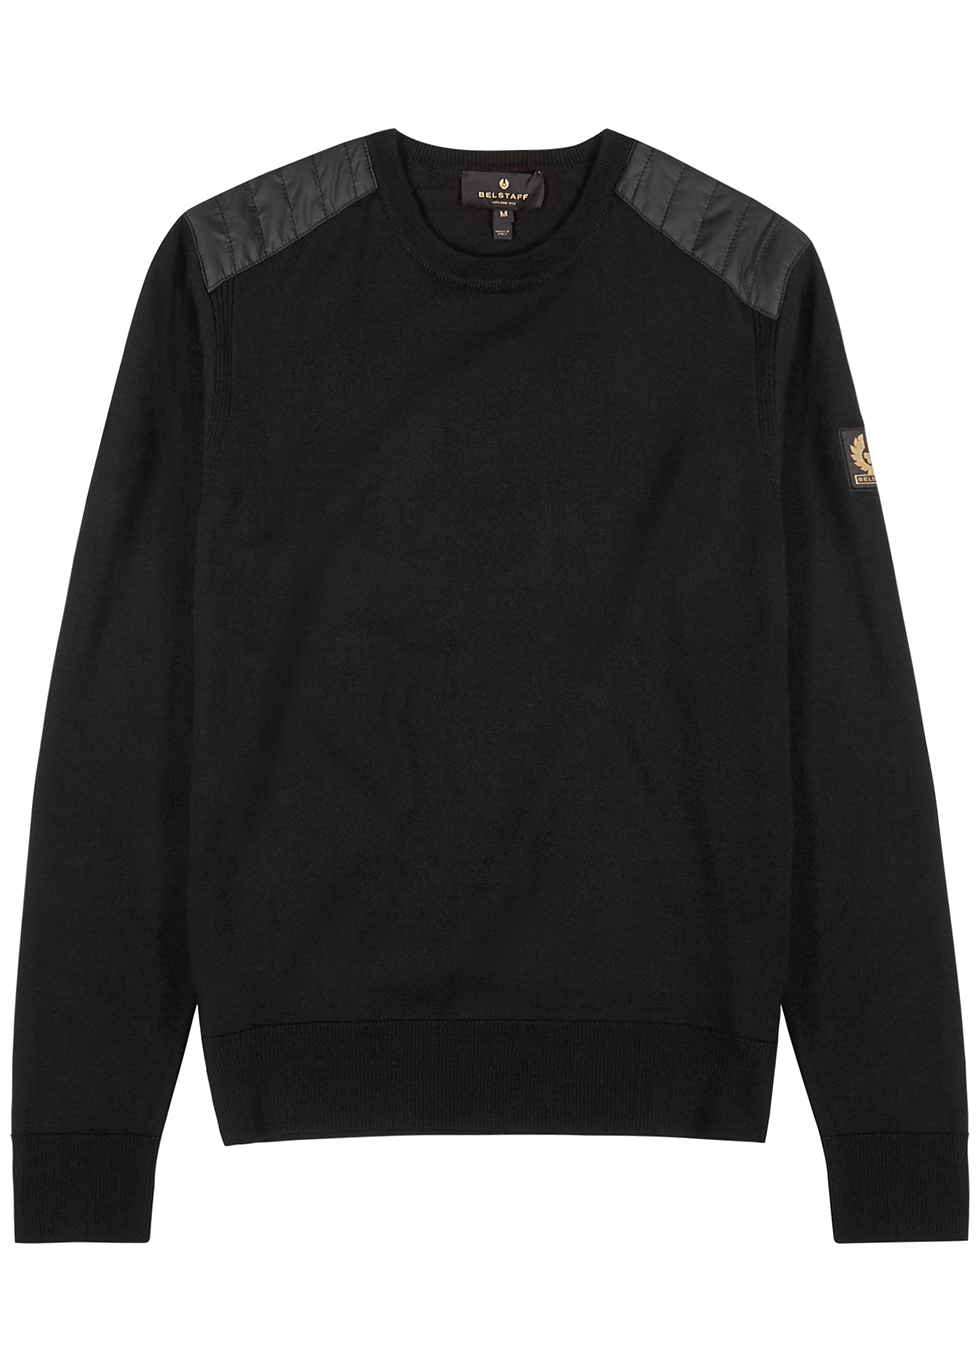 Kerrigan black wool jumper